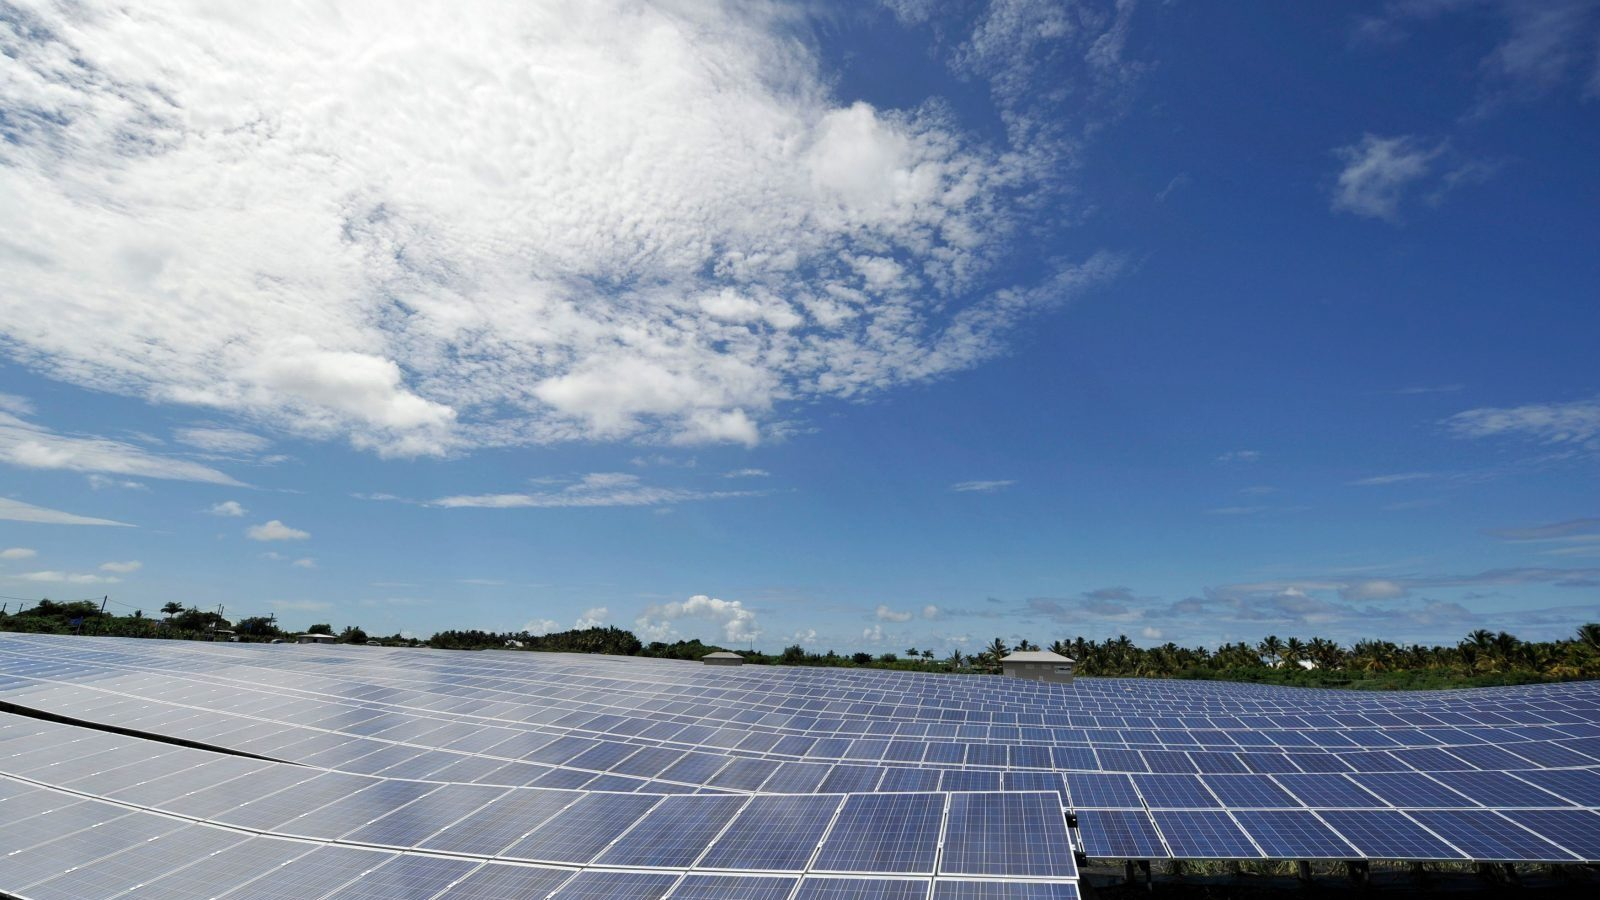 General view of solar panels in a solar plant in Saint Pierre on the French overseas territory of La Reunion January 19, 2010.  REUTERS/Gerard Cerles/Pool  (REUNION - Tags: ENVIRONMENT ENERGY) - PM1E61J0V9G01